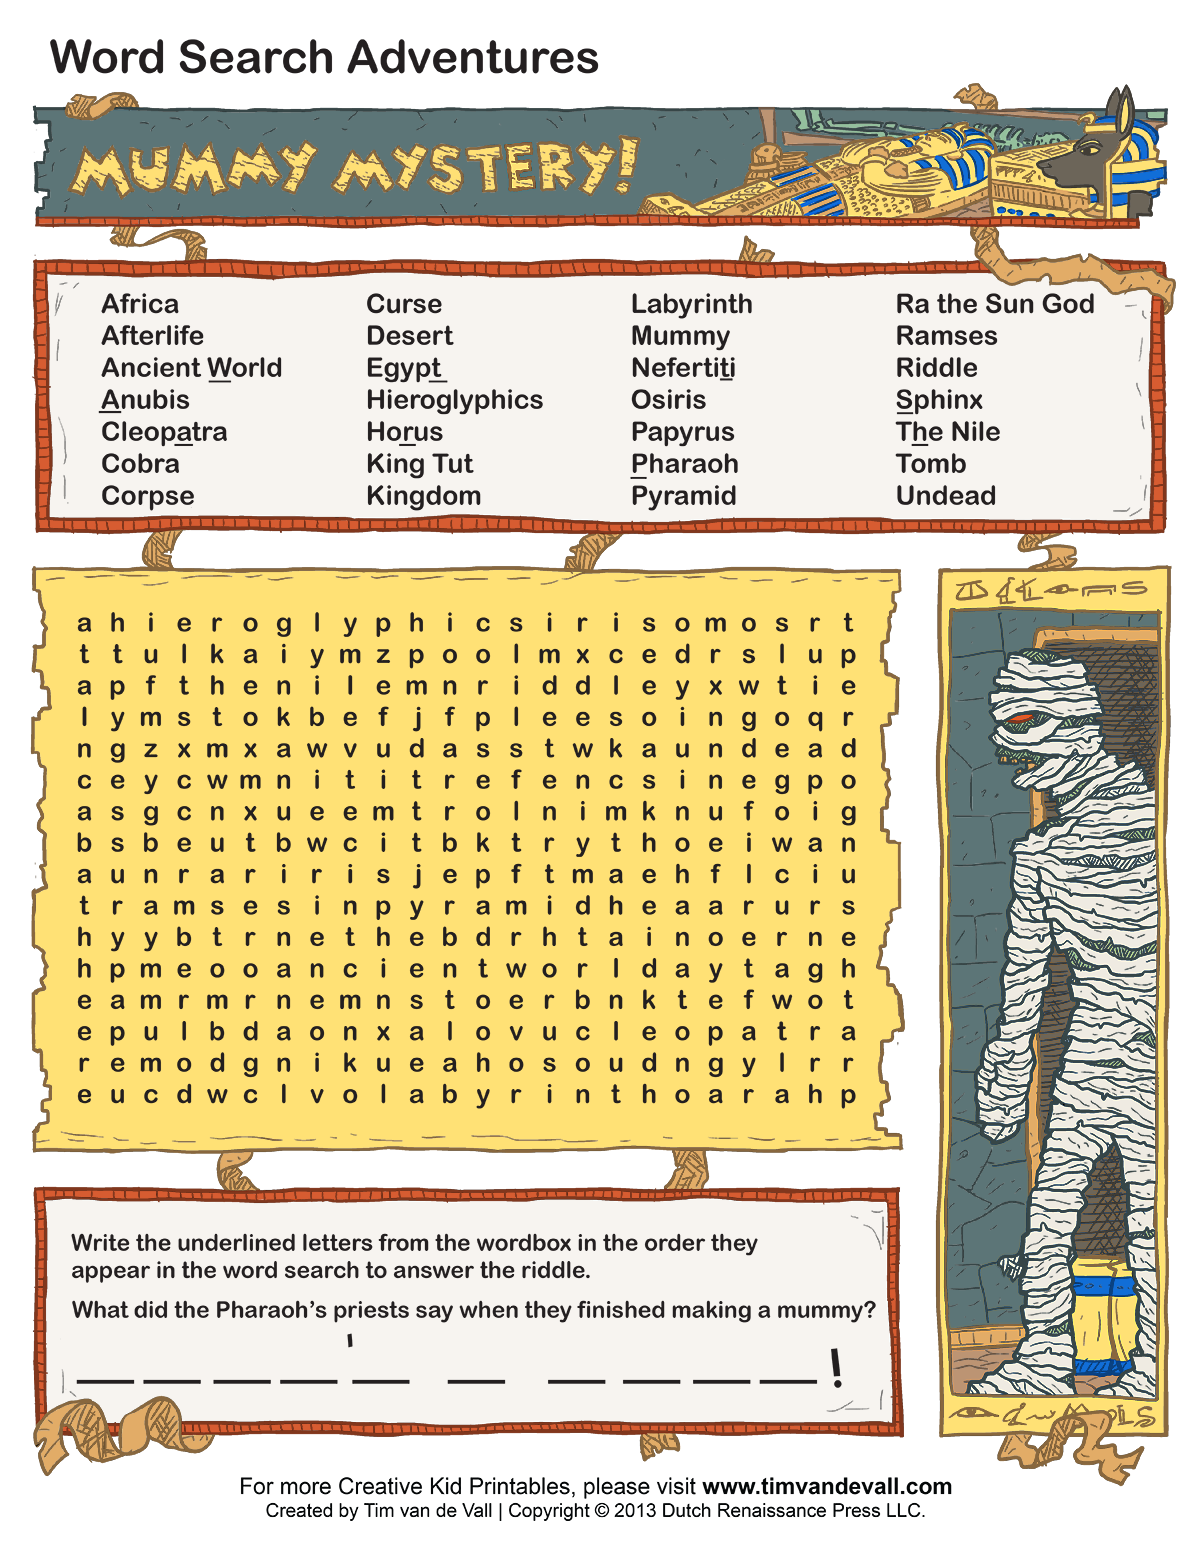 free printable word searches for kids adventure theme games for